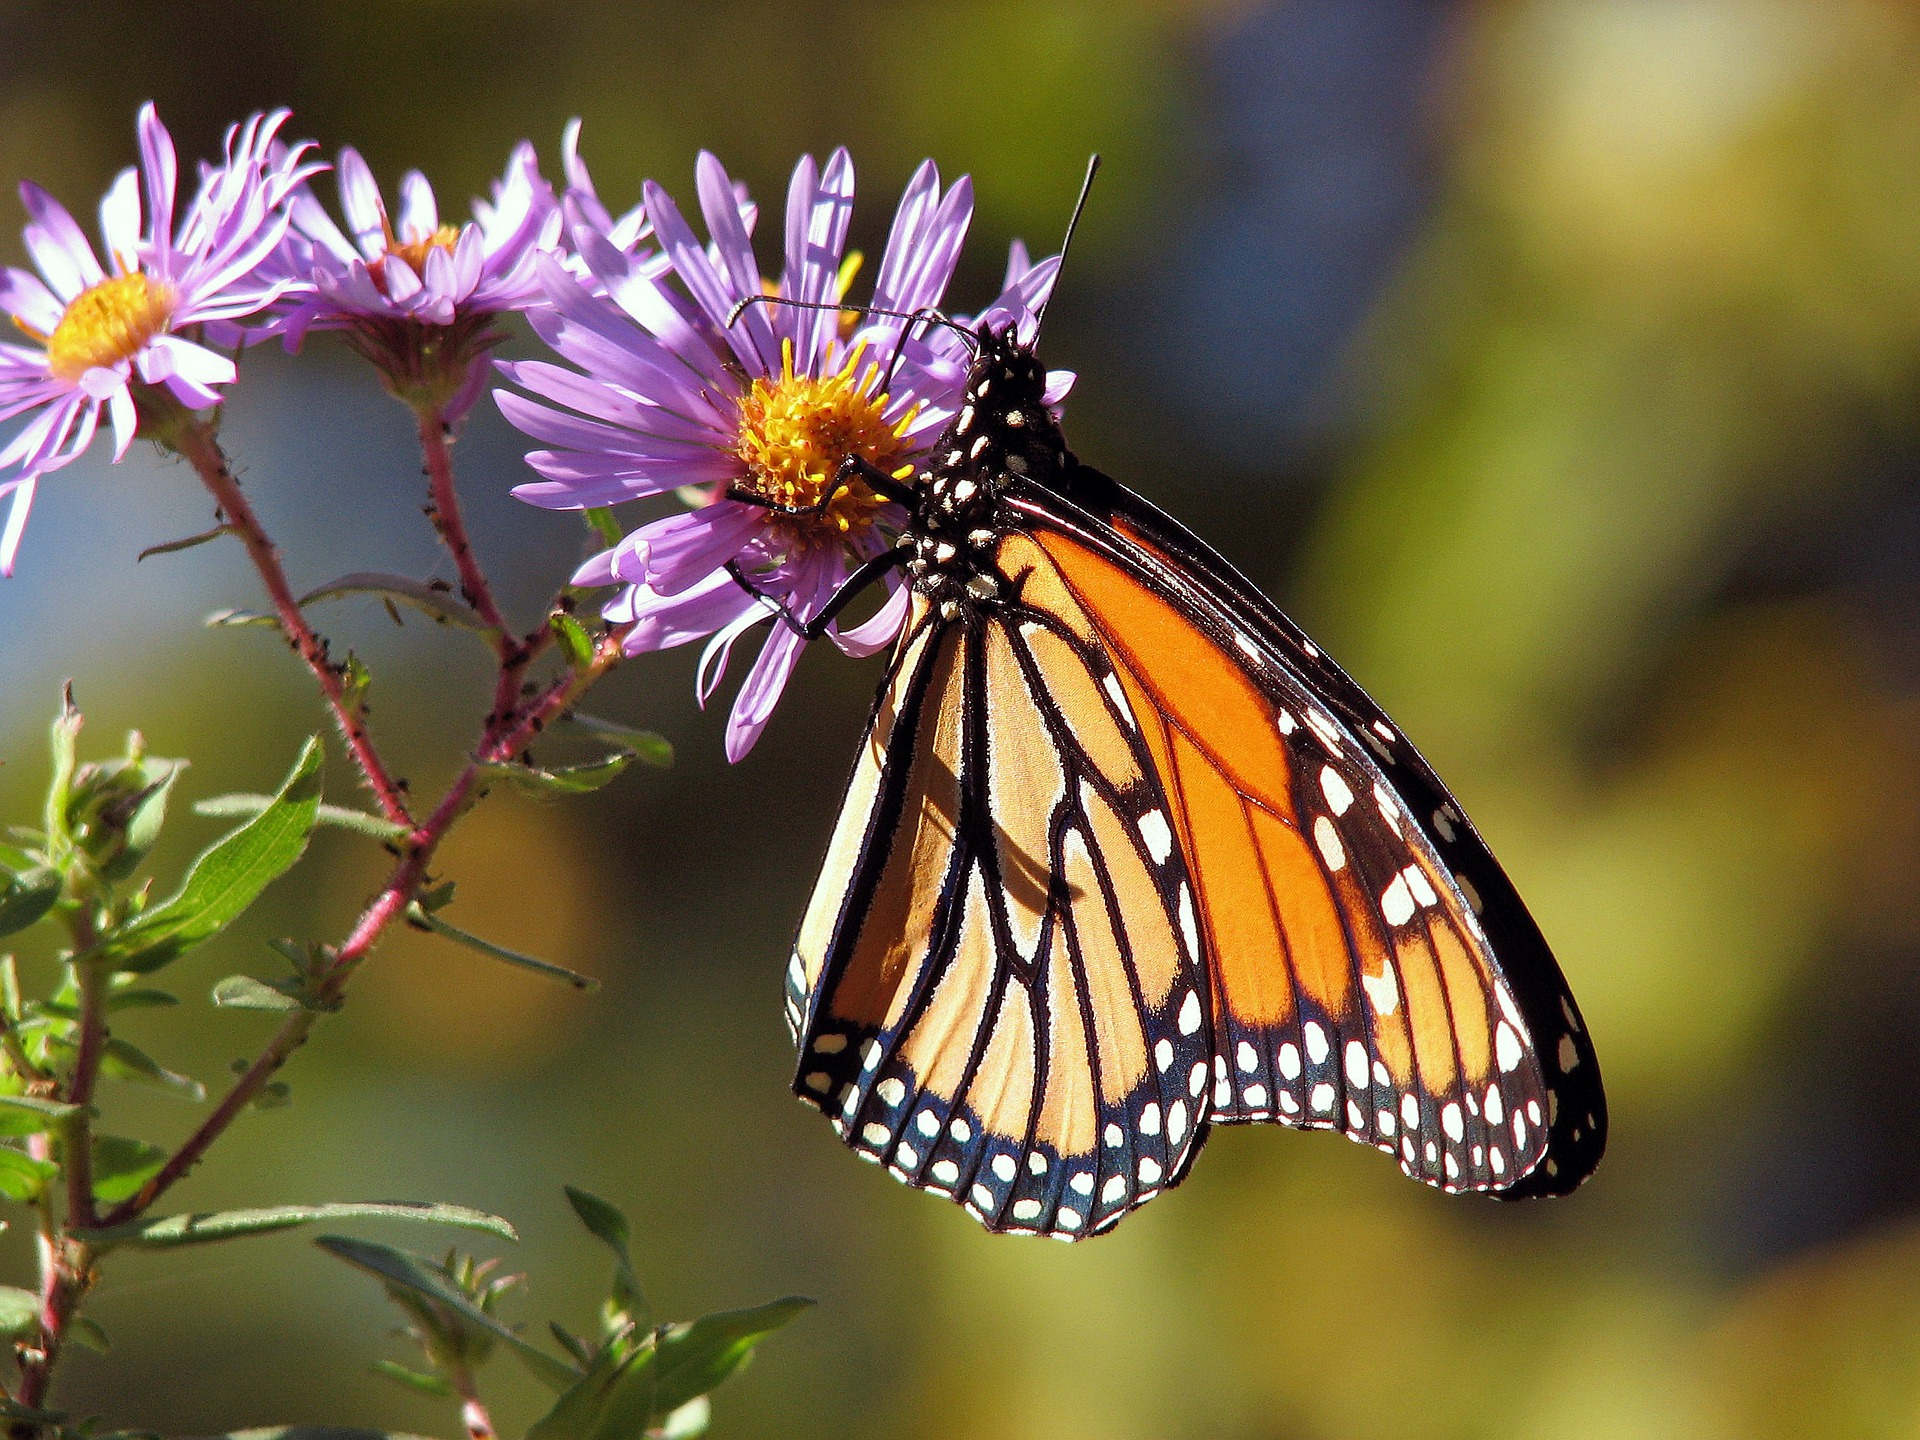 Monarch butterflies are considered a sign from heaven